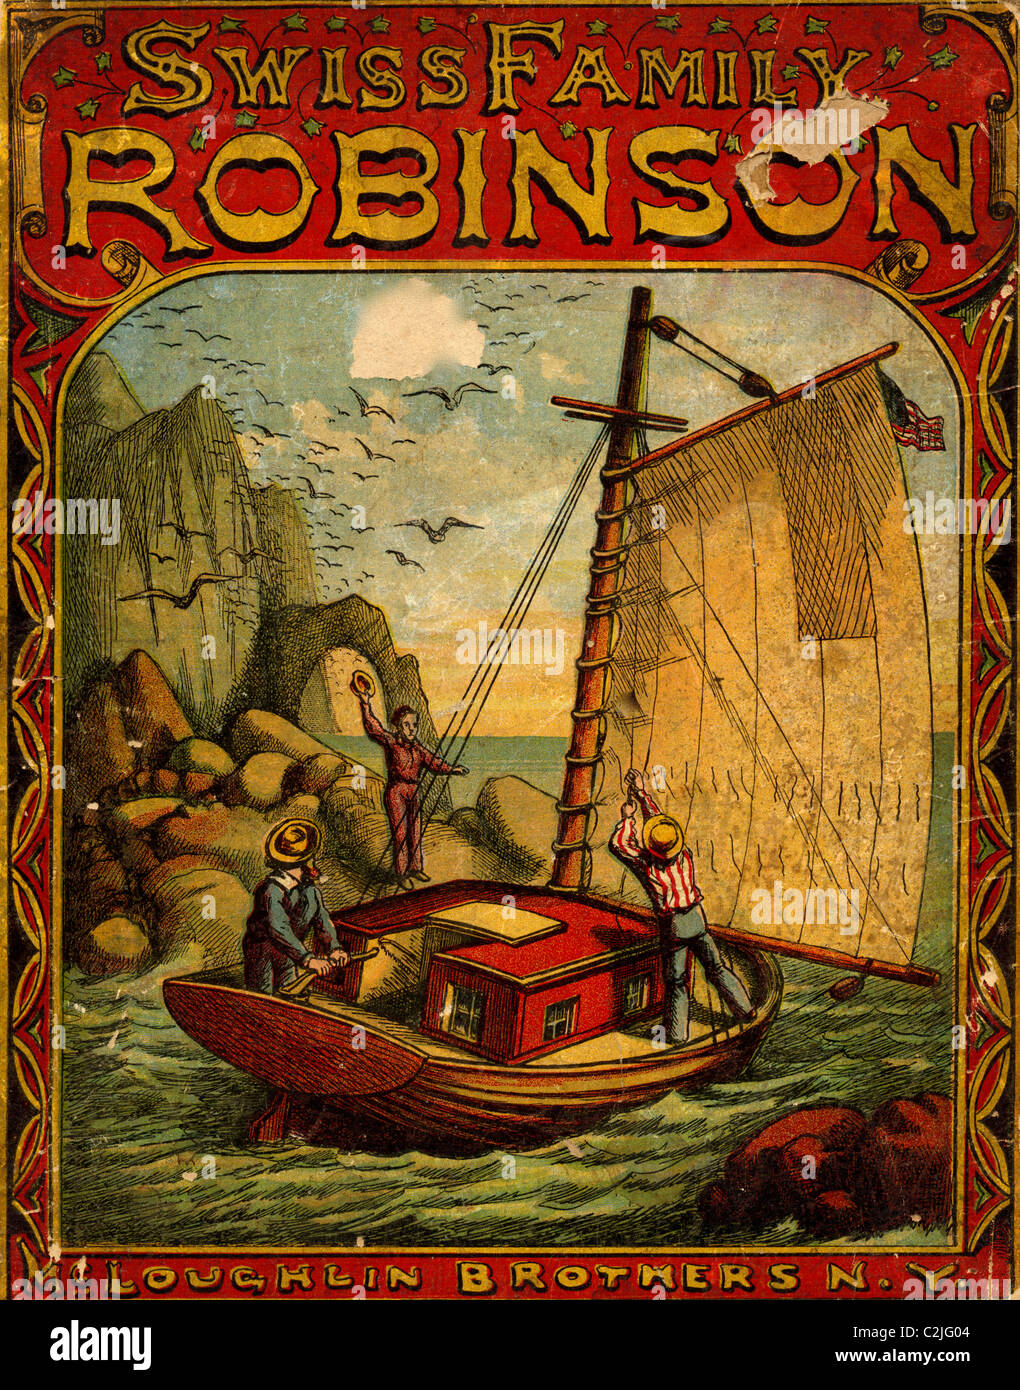 Swiss Family Robinson Book Cover - Stock Image